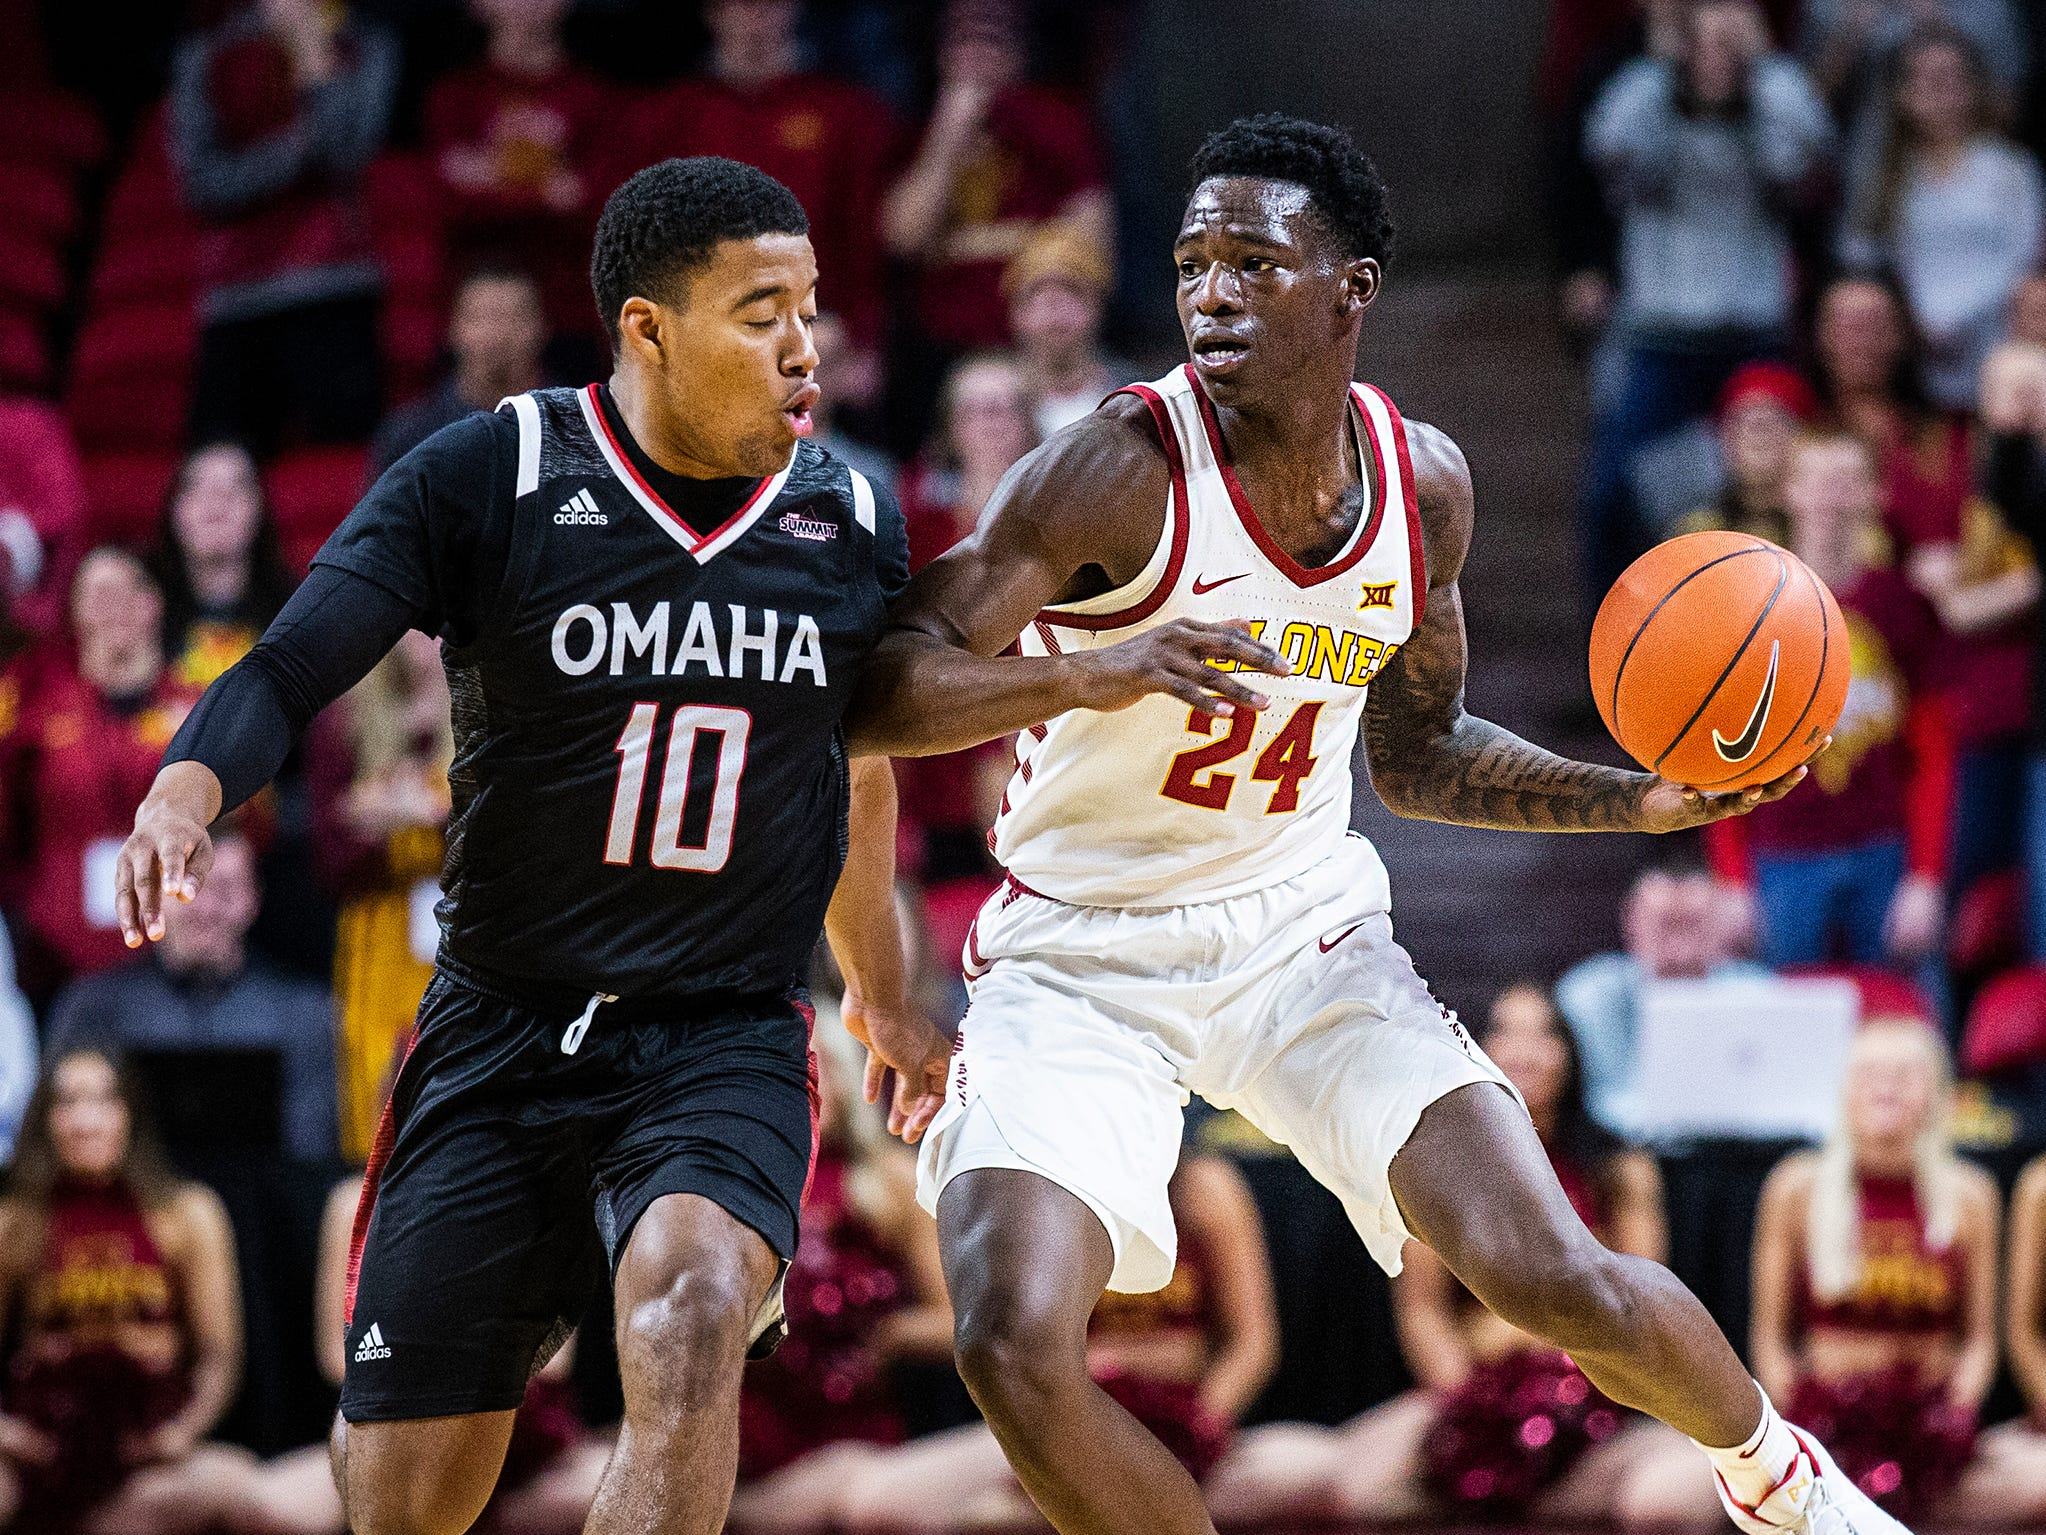 Iowa State's Terrence Lewis brings the ball down the court during the Iowa State men's basketball game against Omaha on Monday, Nov. 26, 2018, at Hilton Coliseum, in Ames.